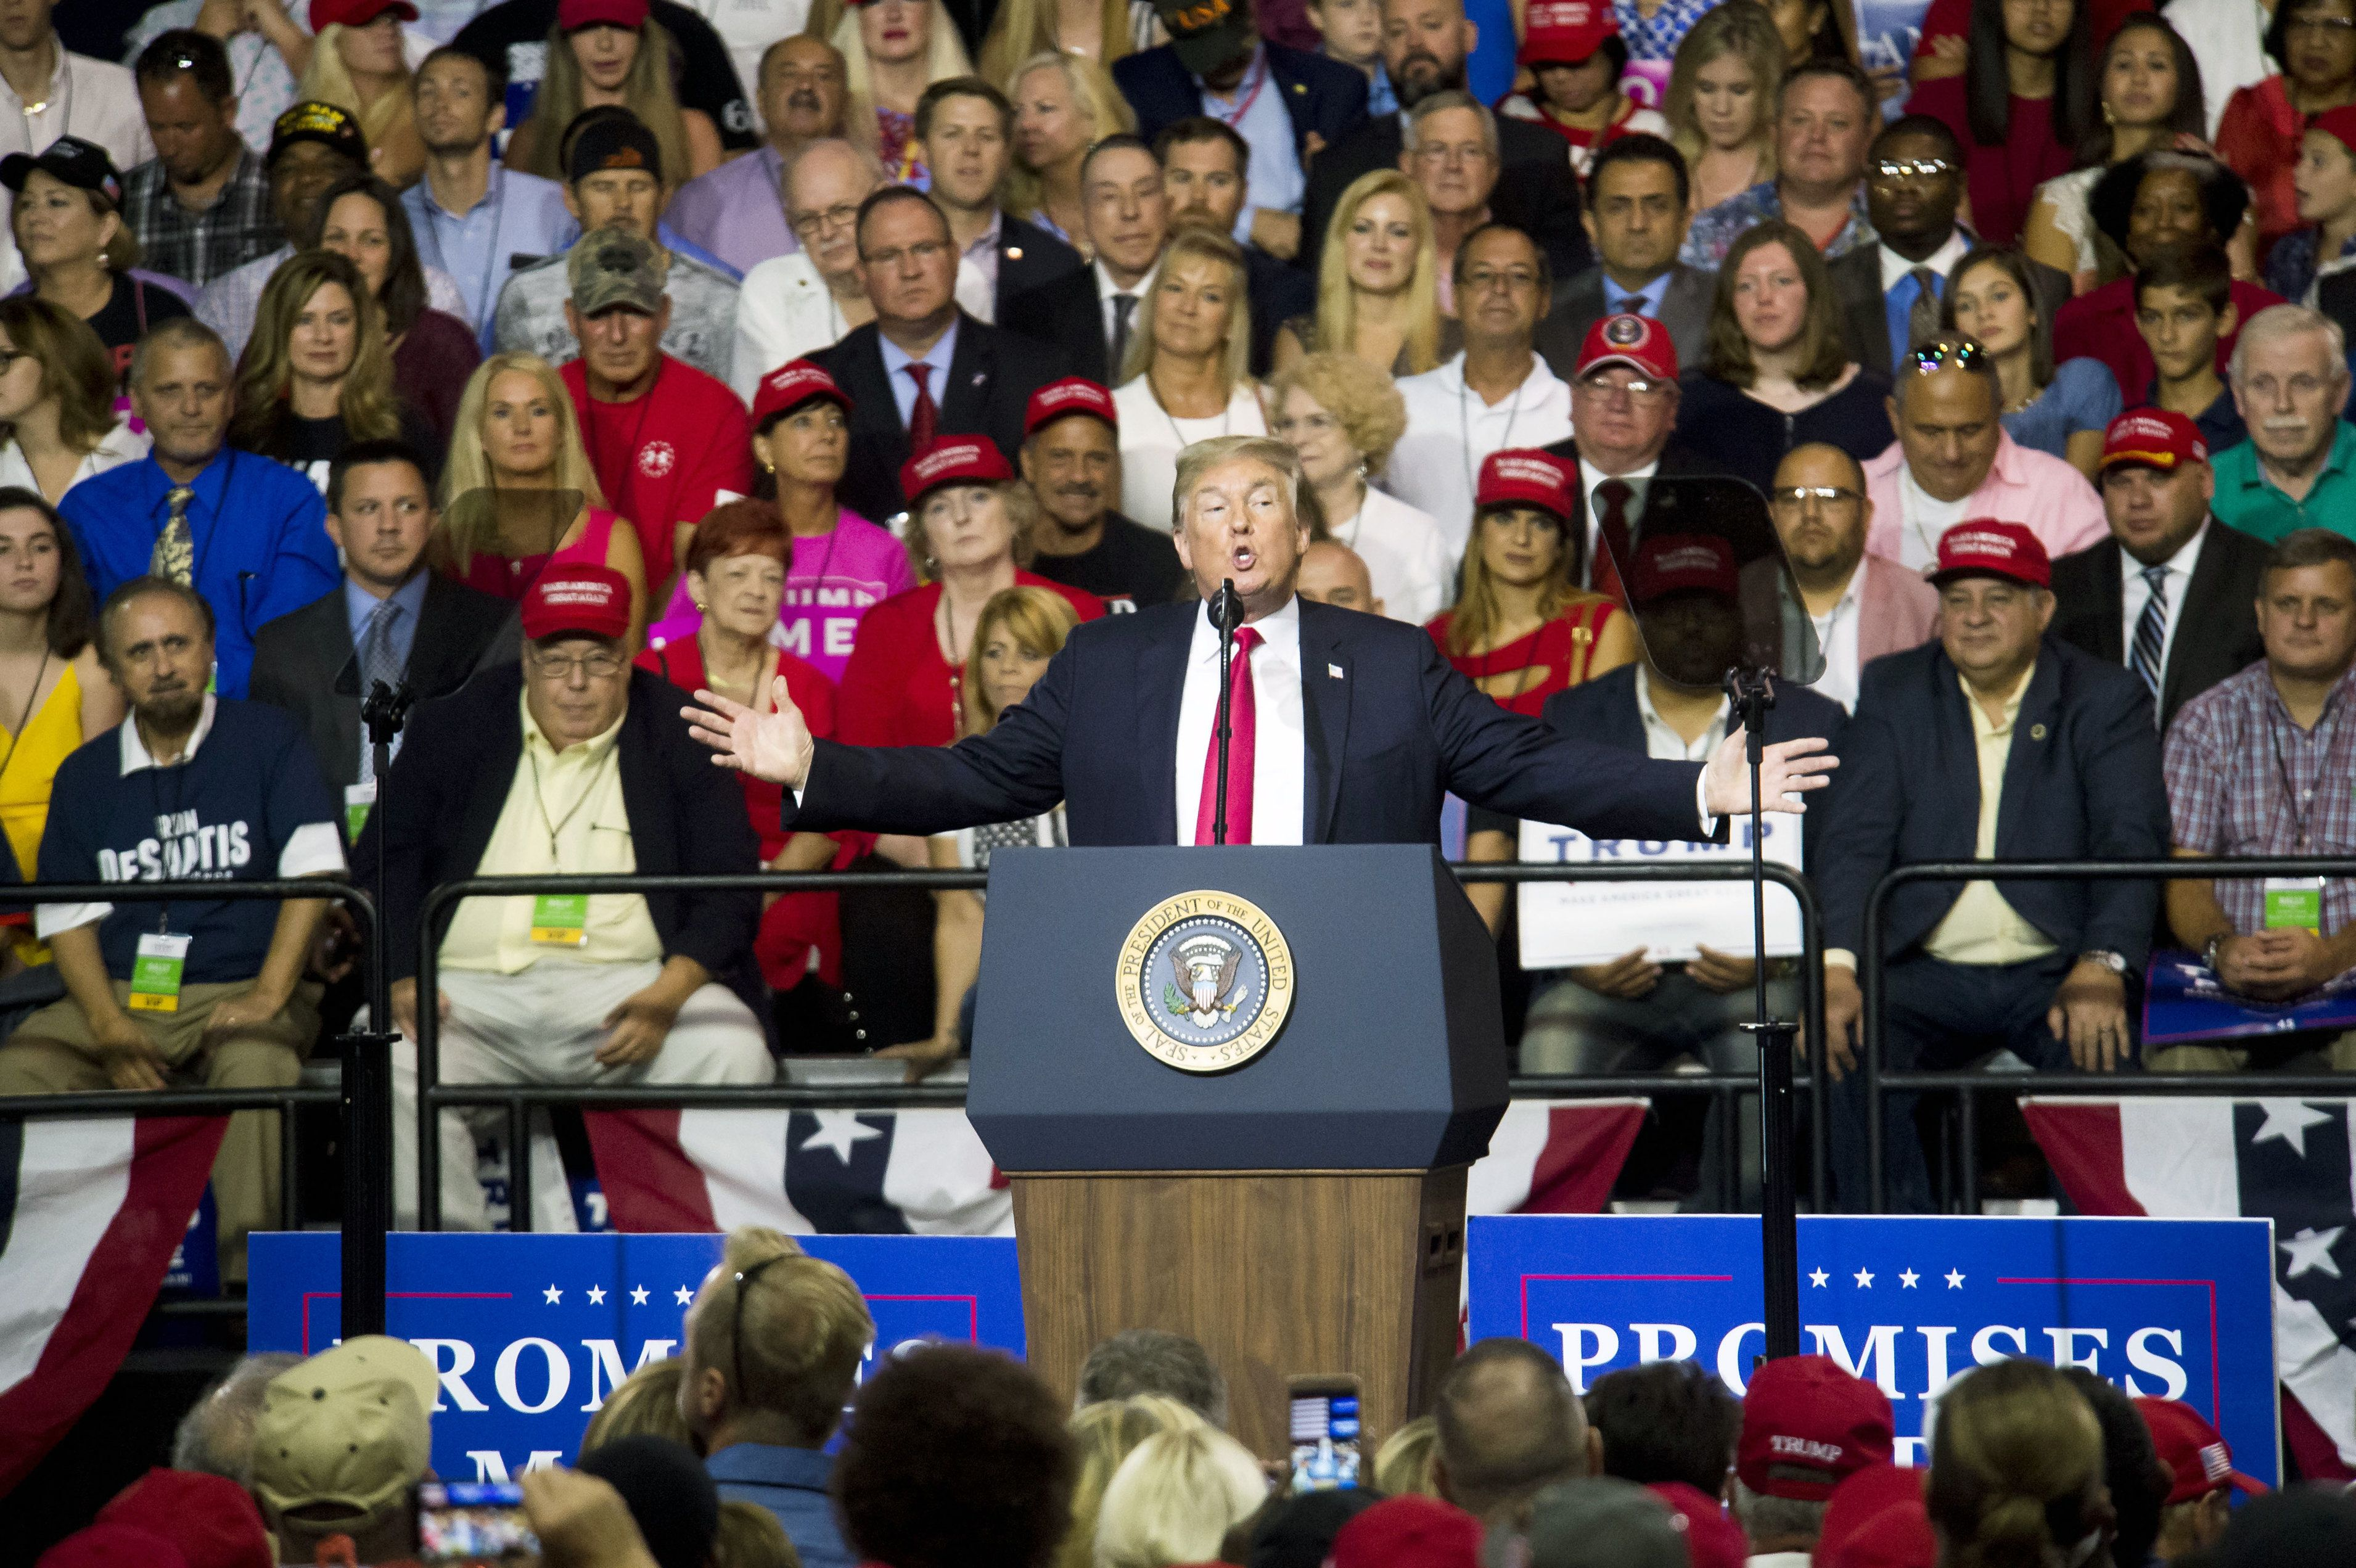 U.S. President Donald Trump gestures as he addresses the crowd during a rally in Tampa, Florida, U.S., on Tuesday, July 31, 2018. Iranian Foreign Minister Javad Zarif pushed back on Trump's suggestion that he'd be willing to meet President Hassan Rouhani with 'no preconditions,' saying the two countries spent plenty of time in negotiations already. Photographer: Zack Wittman/Bloomberg via Getty Images